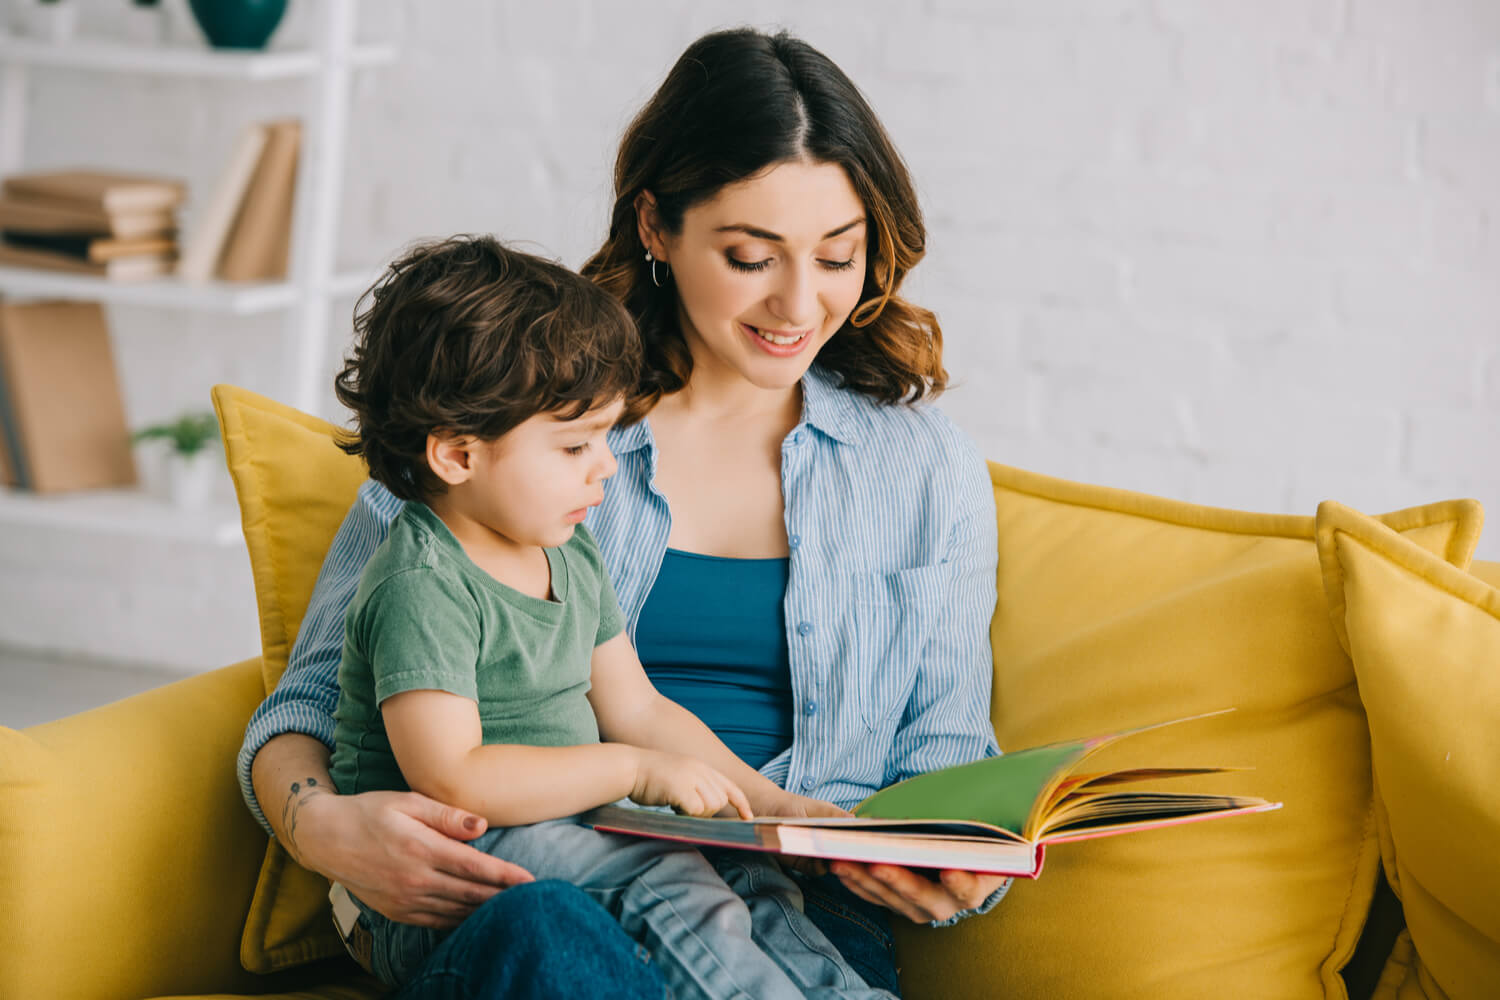 10 Must Read Moral Stories For Kids With Pictures in 2021